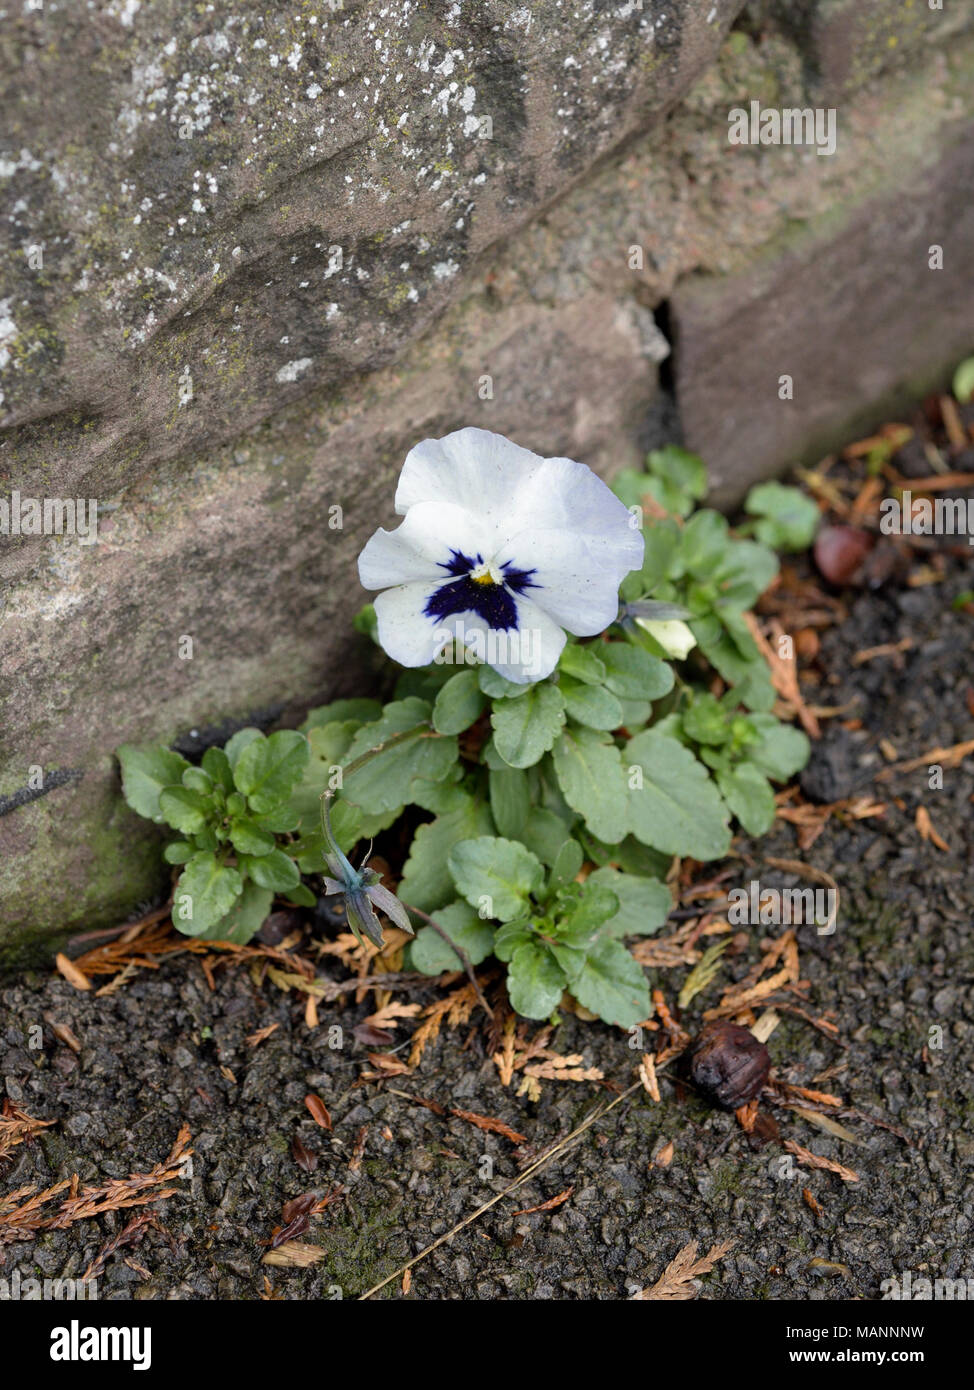 Garden Pansy, Viola x wittrockiana growing by a wall Stock Photo